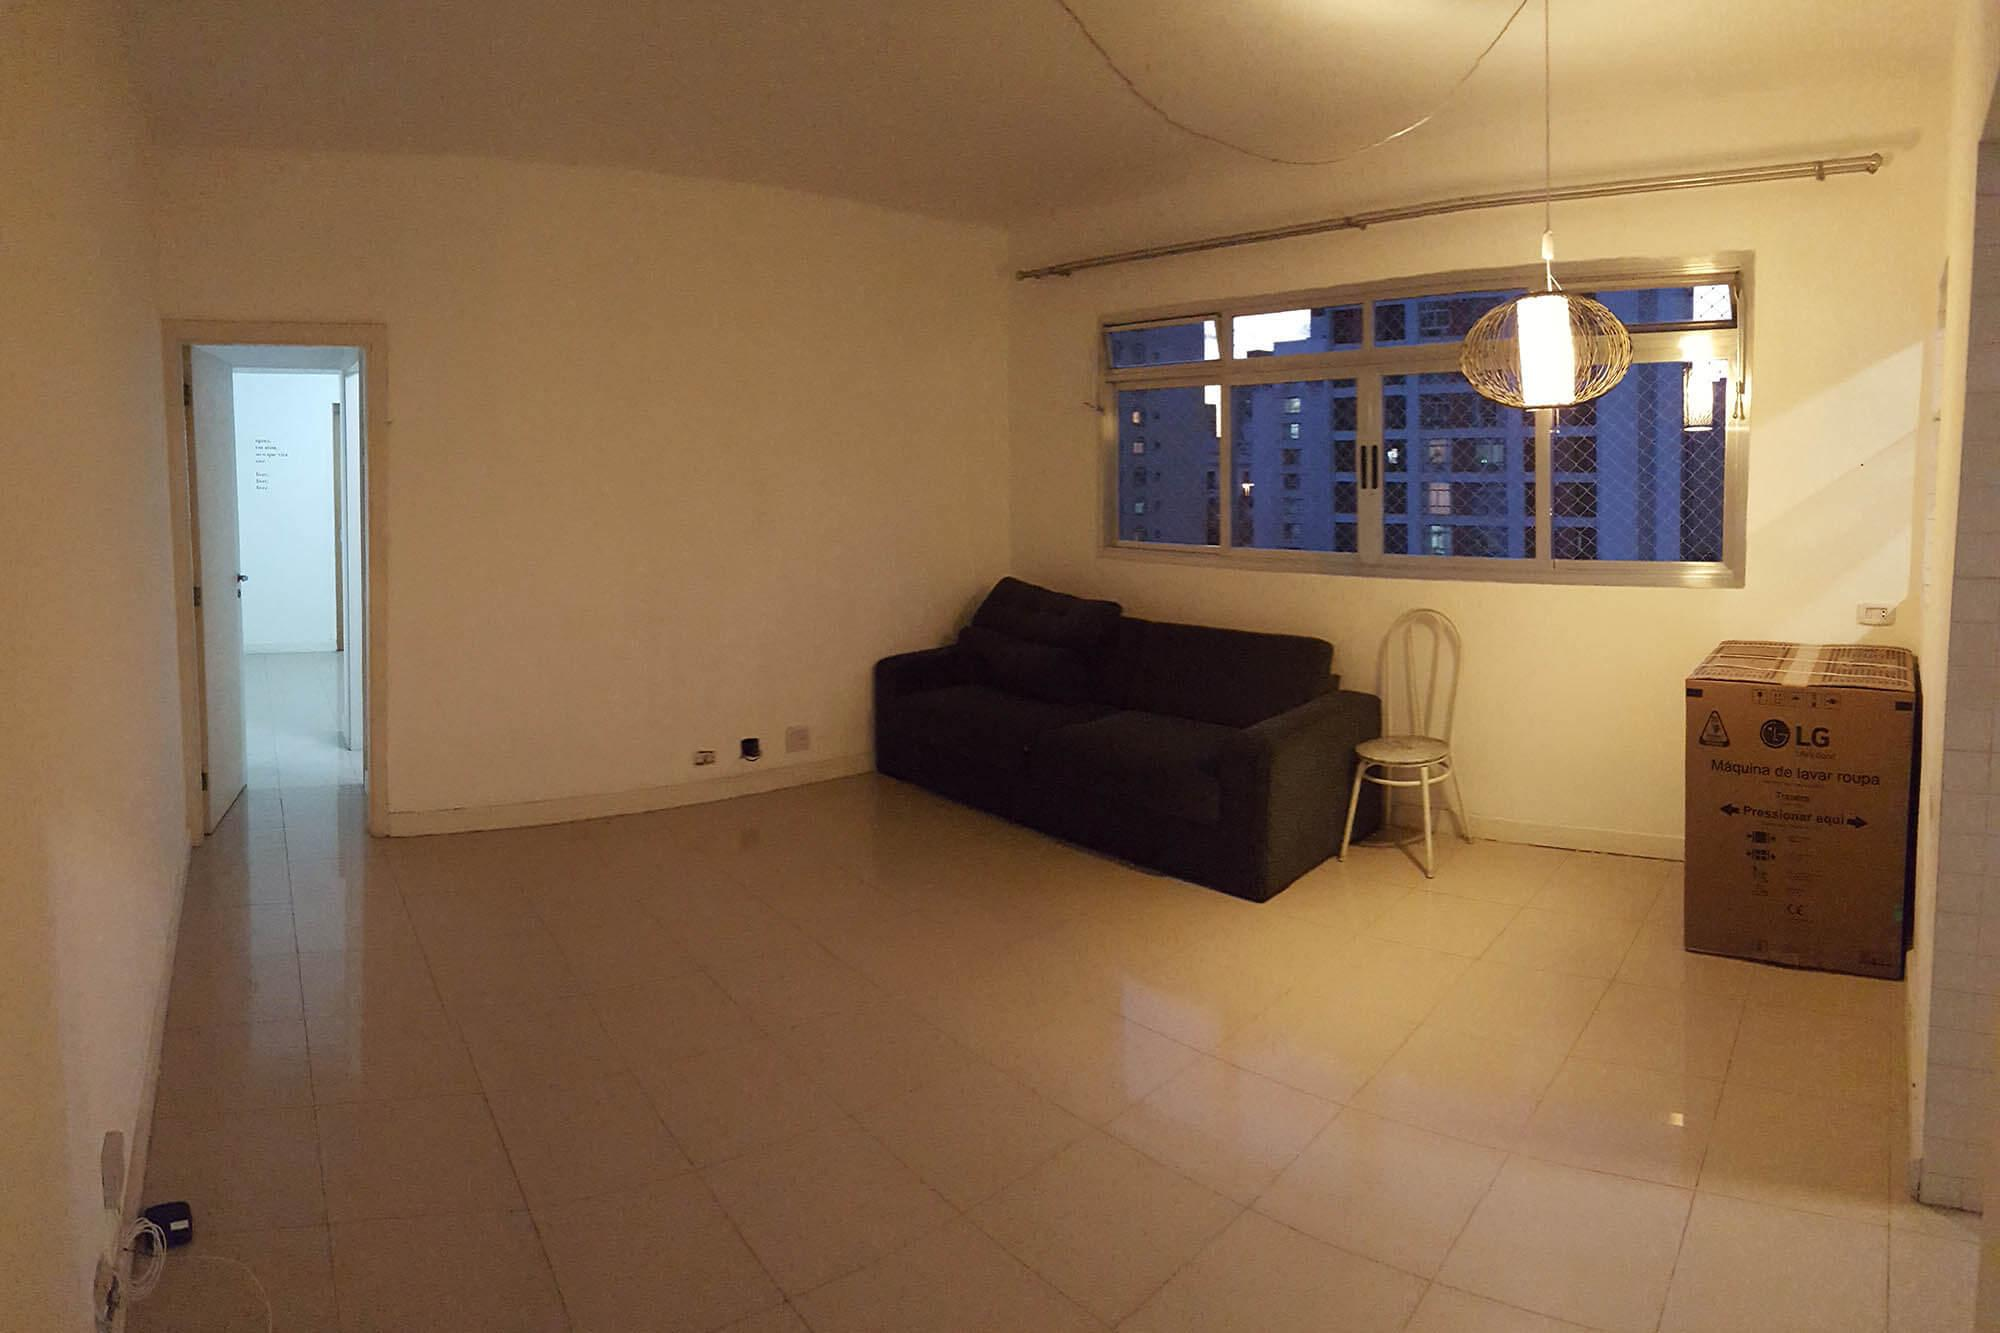 Room in the H&C apartment before the renovation, still unfurnished